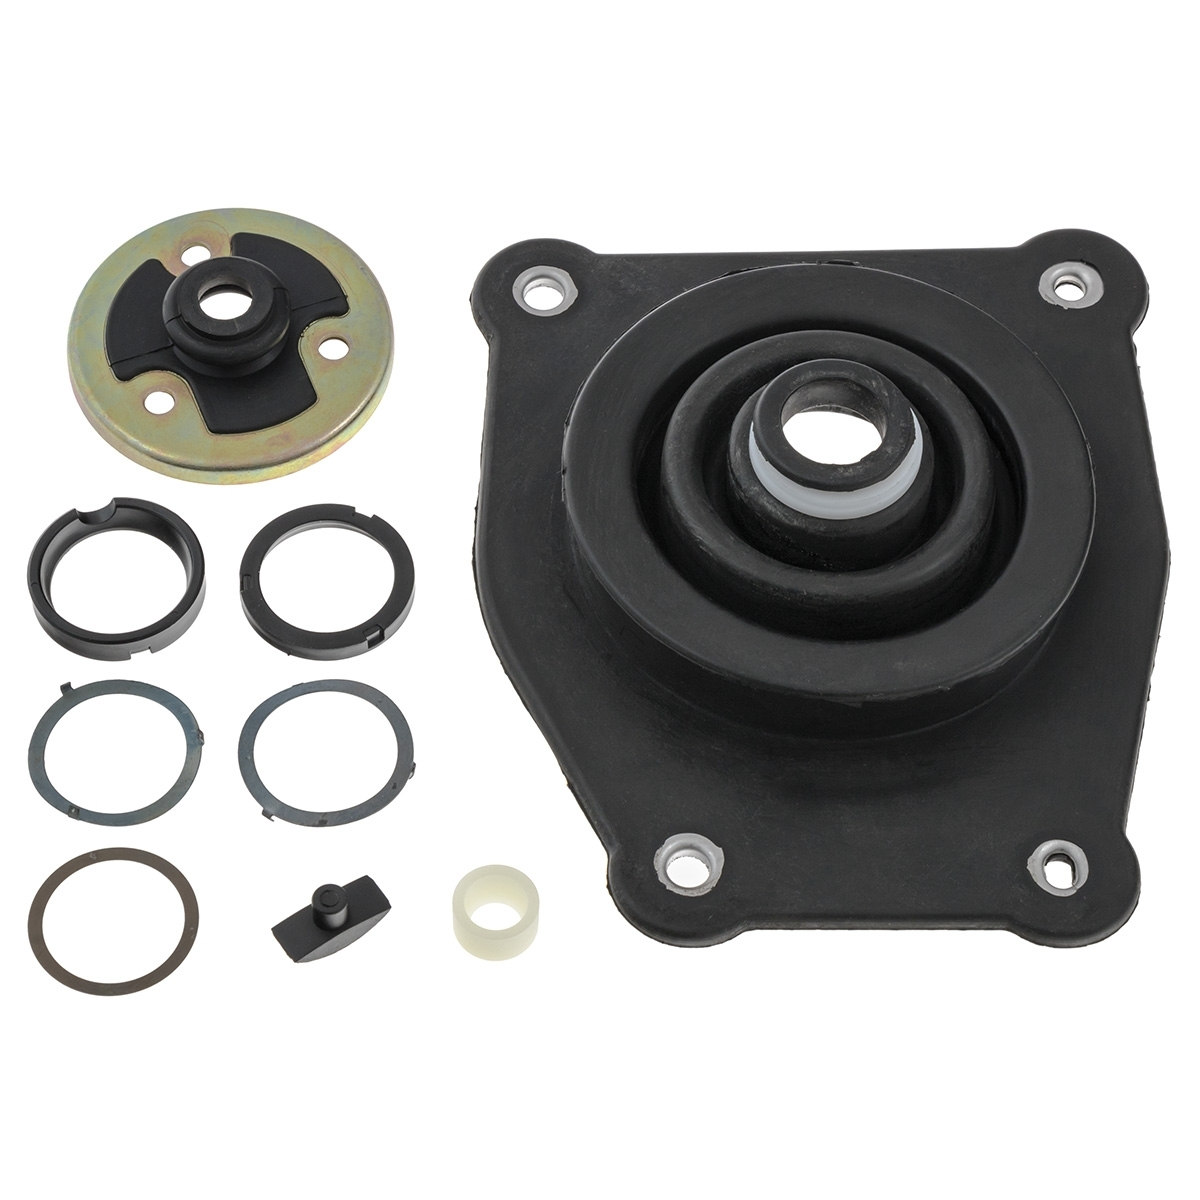 Mazda MX5 Quick shift gear change kit 5 speed by Cobalt for Mk1 Mk2 Mk2.5 NEW